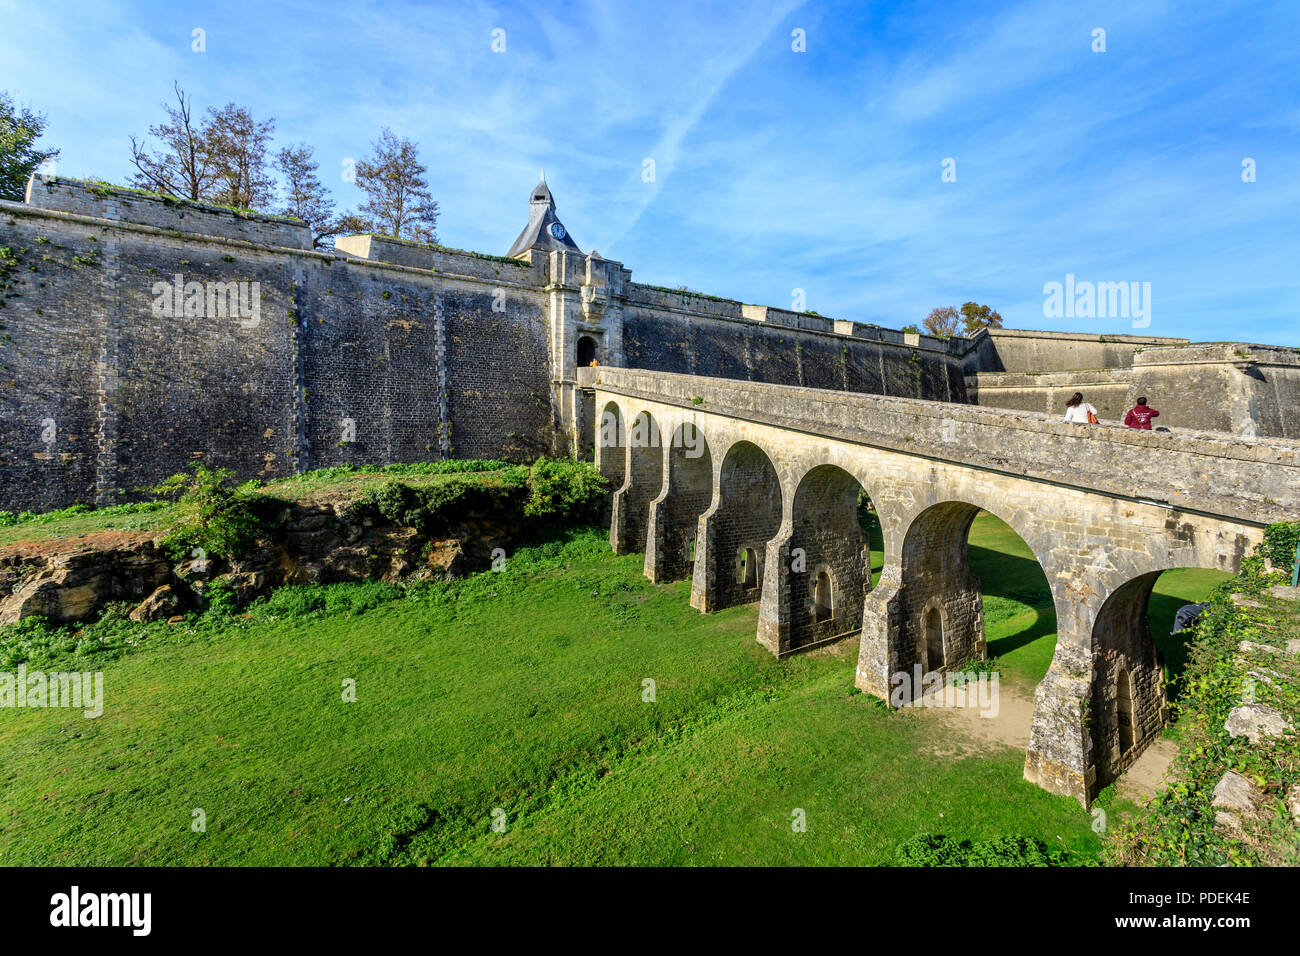 France, Gironde, Blaye, citadel, Reseau des sites majeurs de Vauban (Fortifications of Vauban UNESCO World Heritage Site), ramparts and the Porte Roya - Stock Image